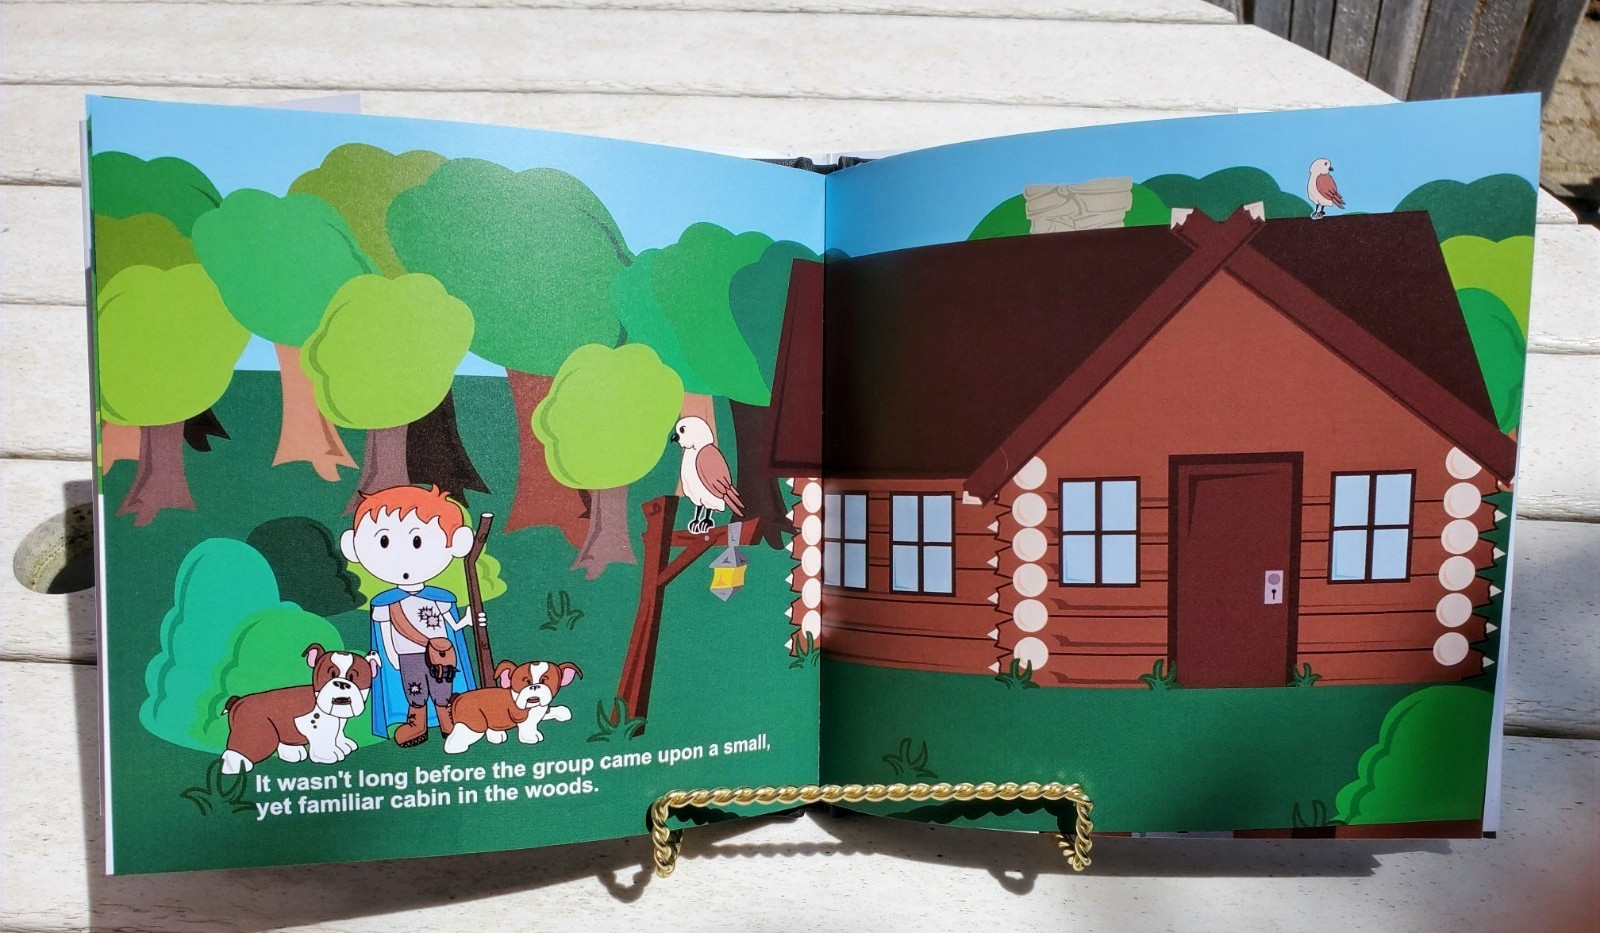 Photograph of the custom storybook, one of the long images in the book.